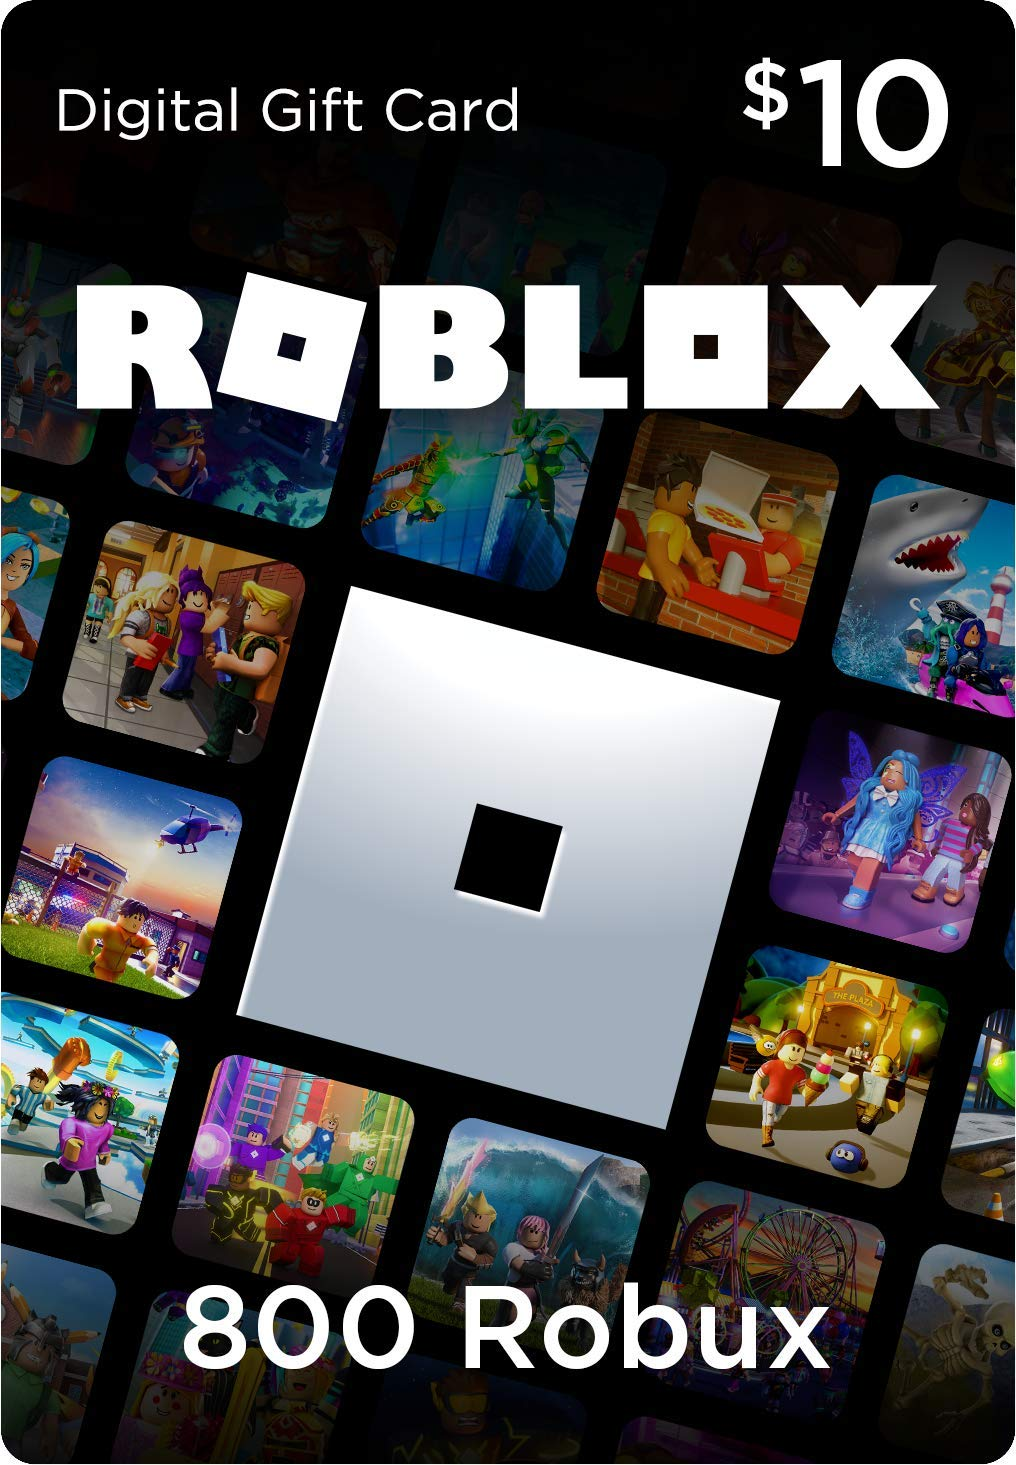 Roblox Gift Card - 800 Robux [Includes Exclusive Virtual Item] [Online Game Code]